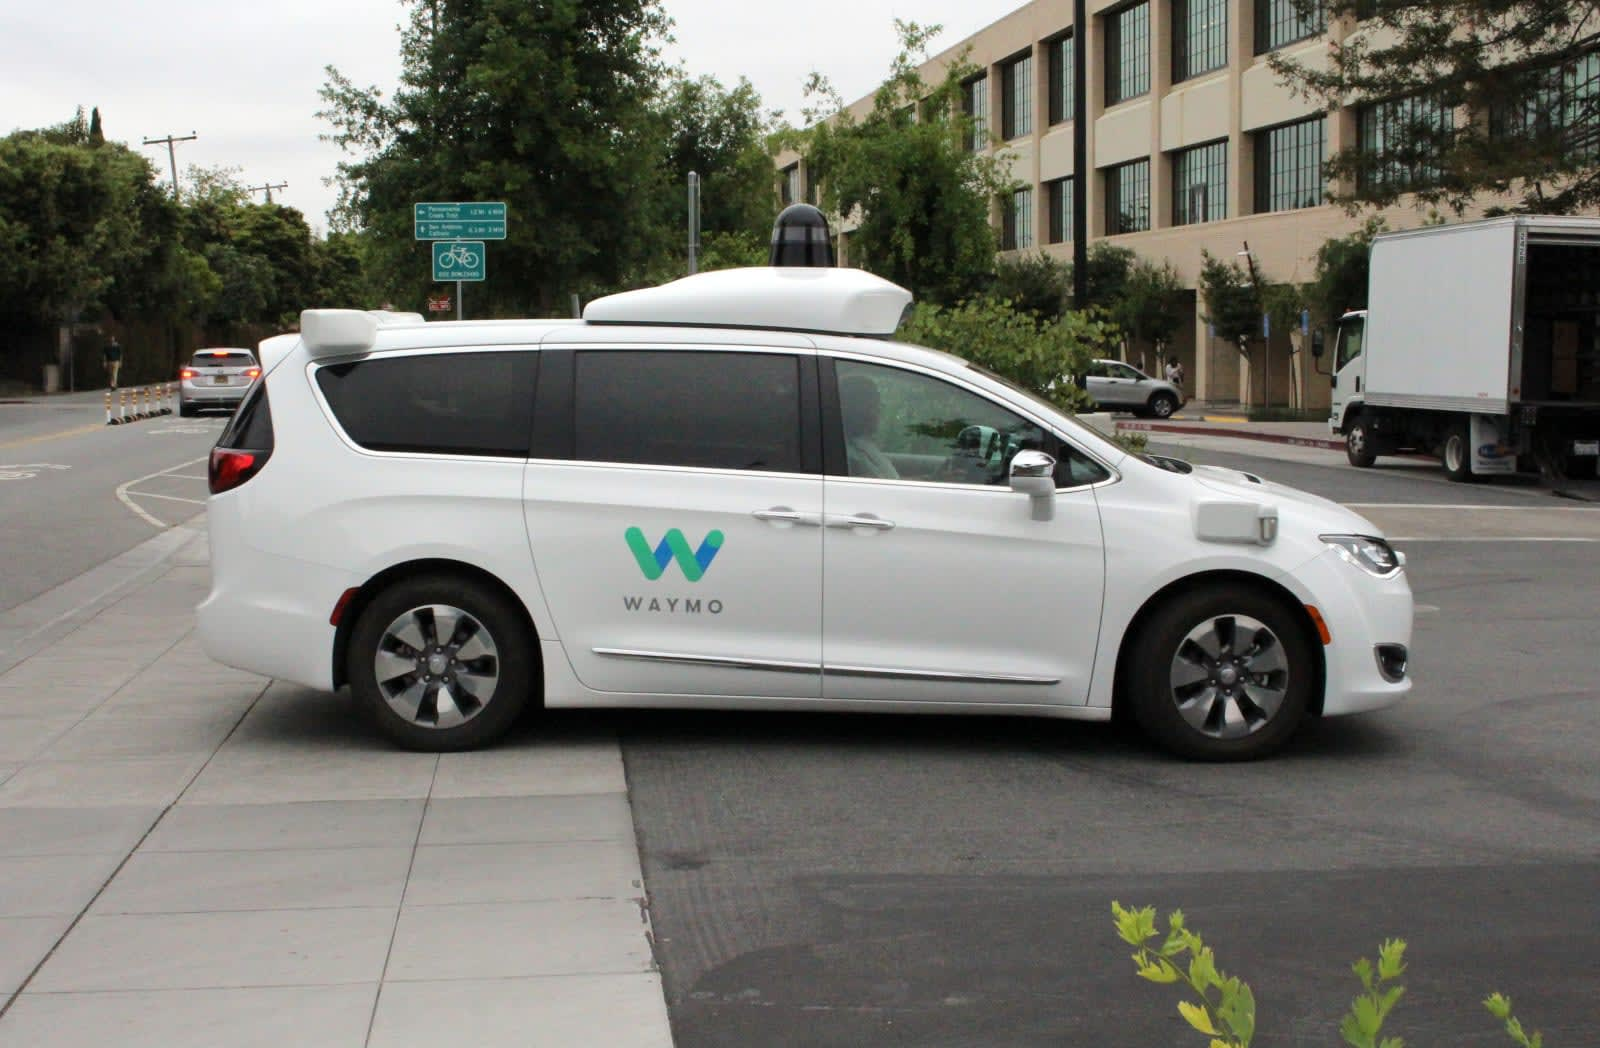 Waymo uses evolutionary competition to improve its self